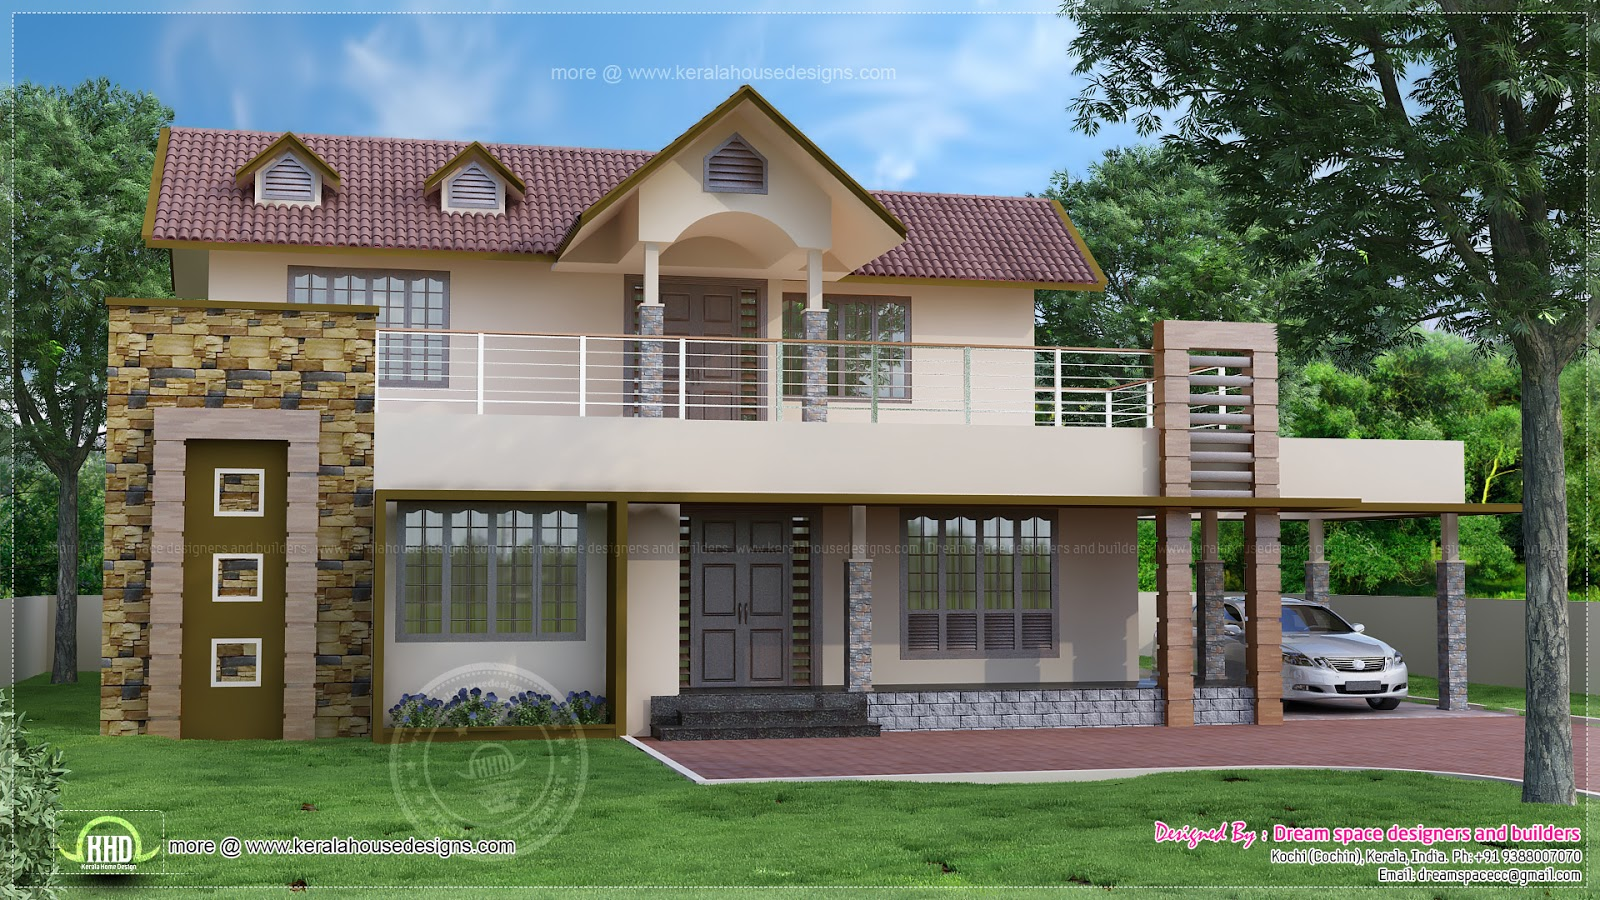 4 bedroom two storey villa exterior house design plans for Exterior design of 2 storey house